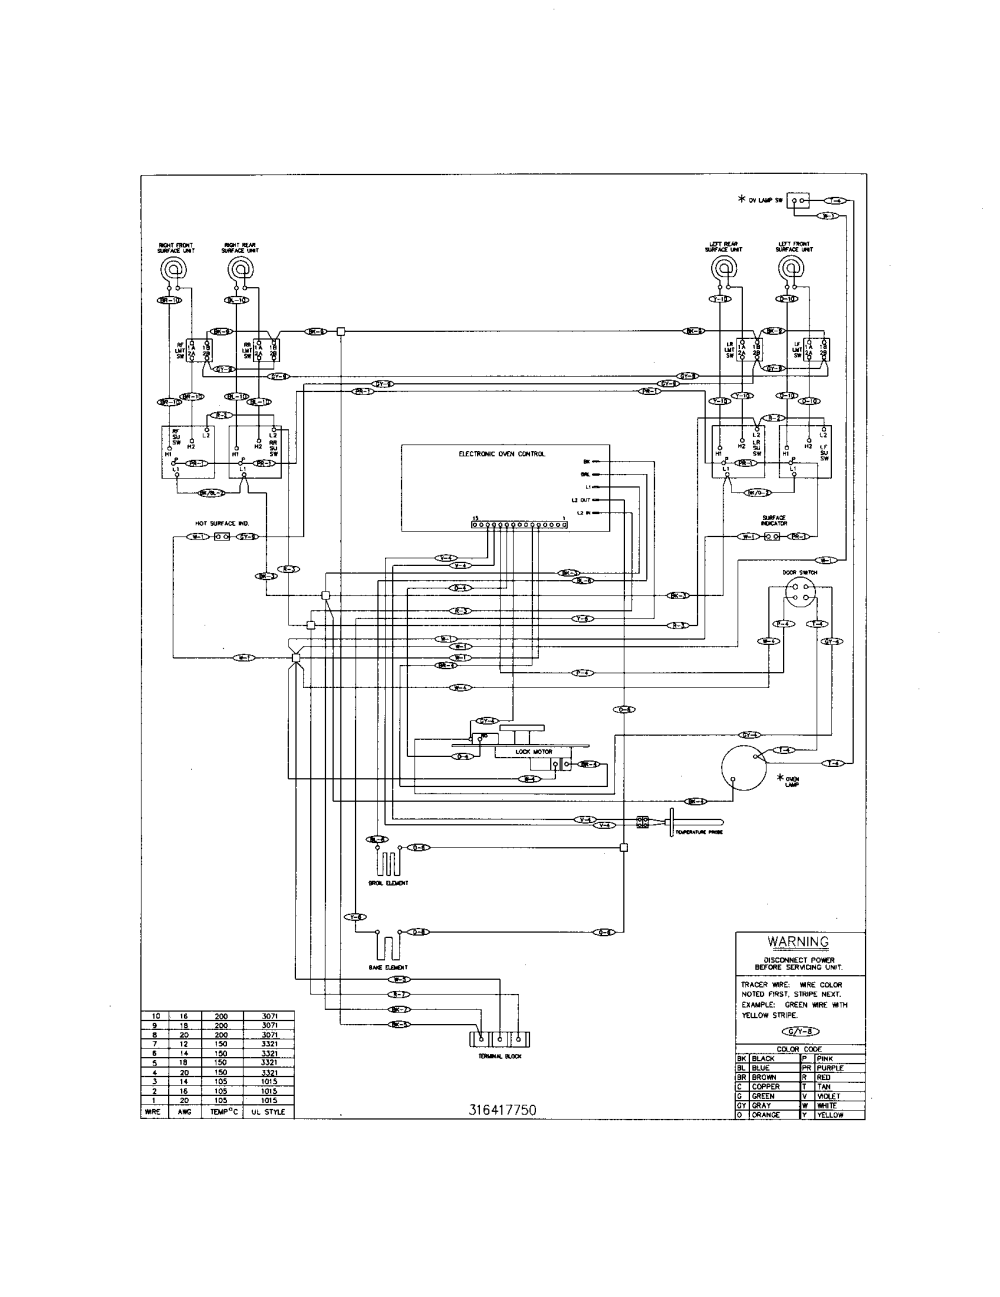 medium resolution of westinghouse 77020 wiring diagram wiring diagram blog westinghouse 77020 wiring diagram wiring library westinghouse 77020 wiring